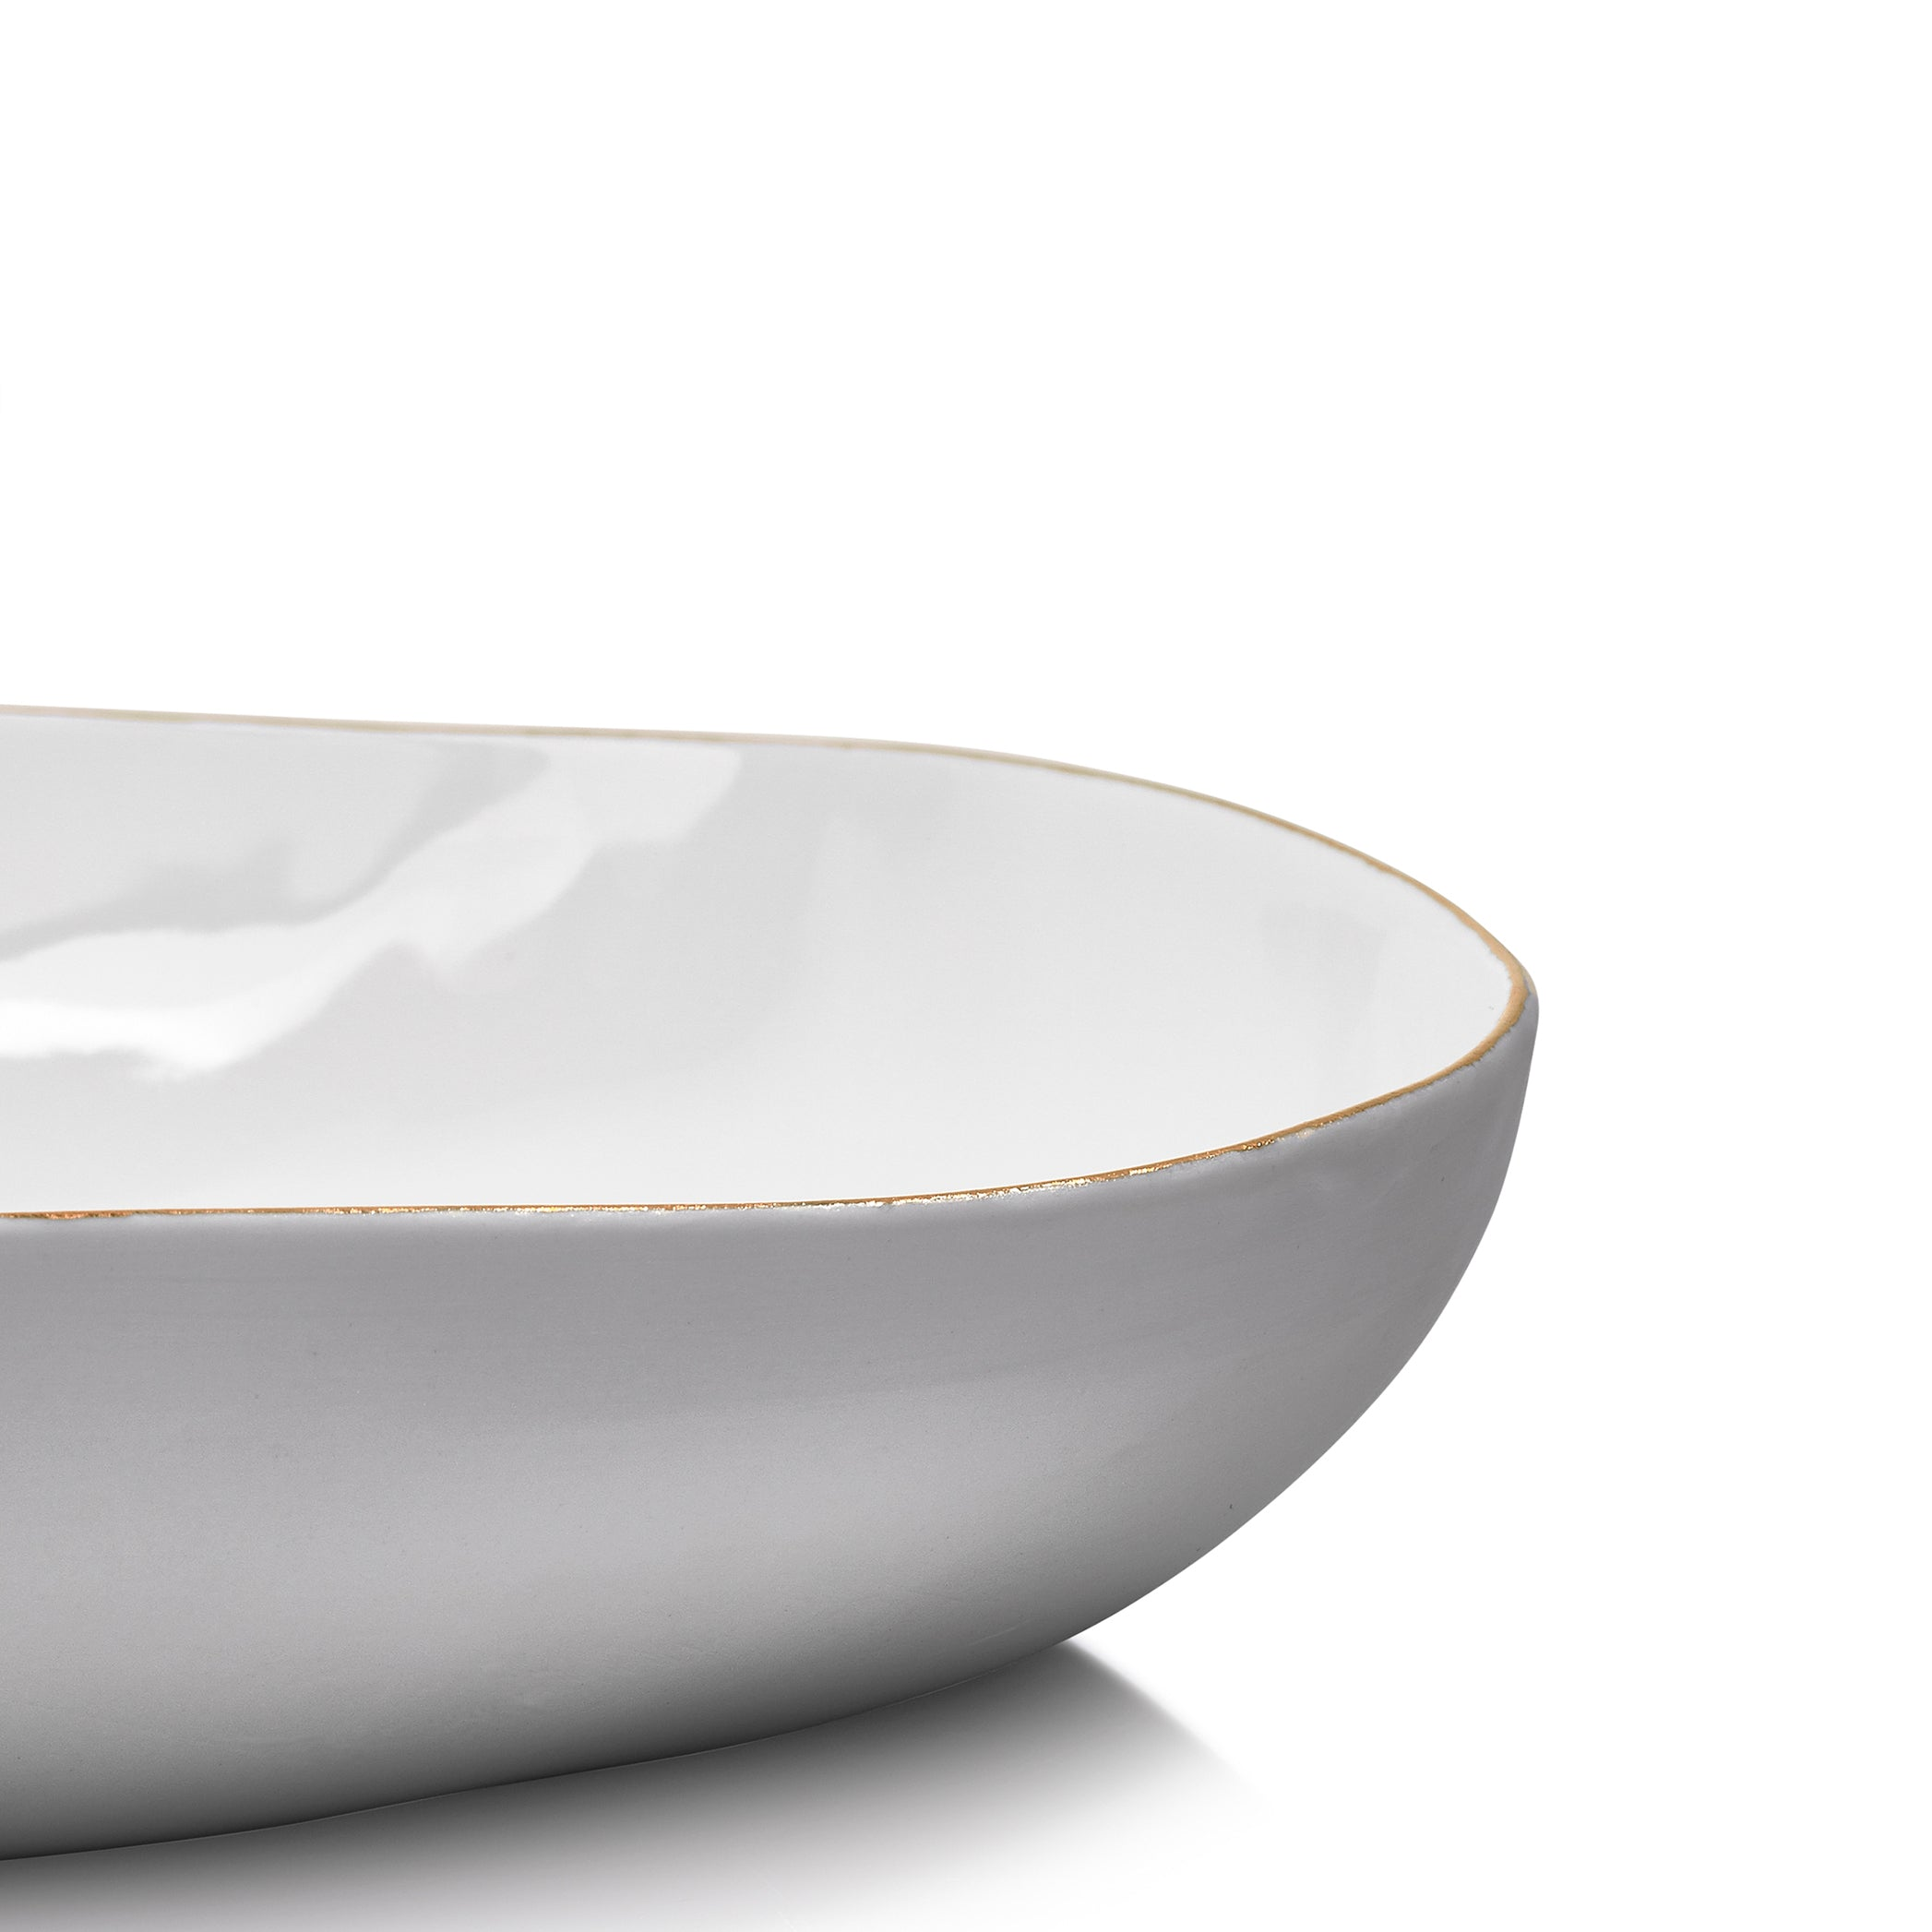 S&B Handmade 35cm Porcelain Salad Bowl with Gold Rim